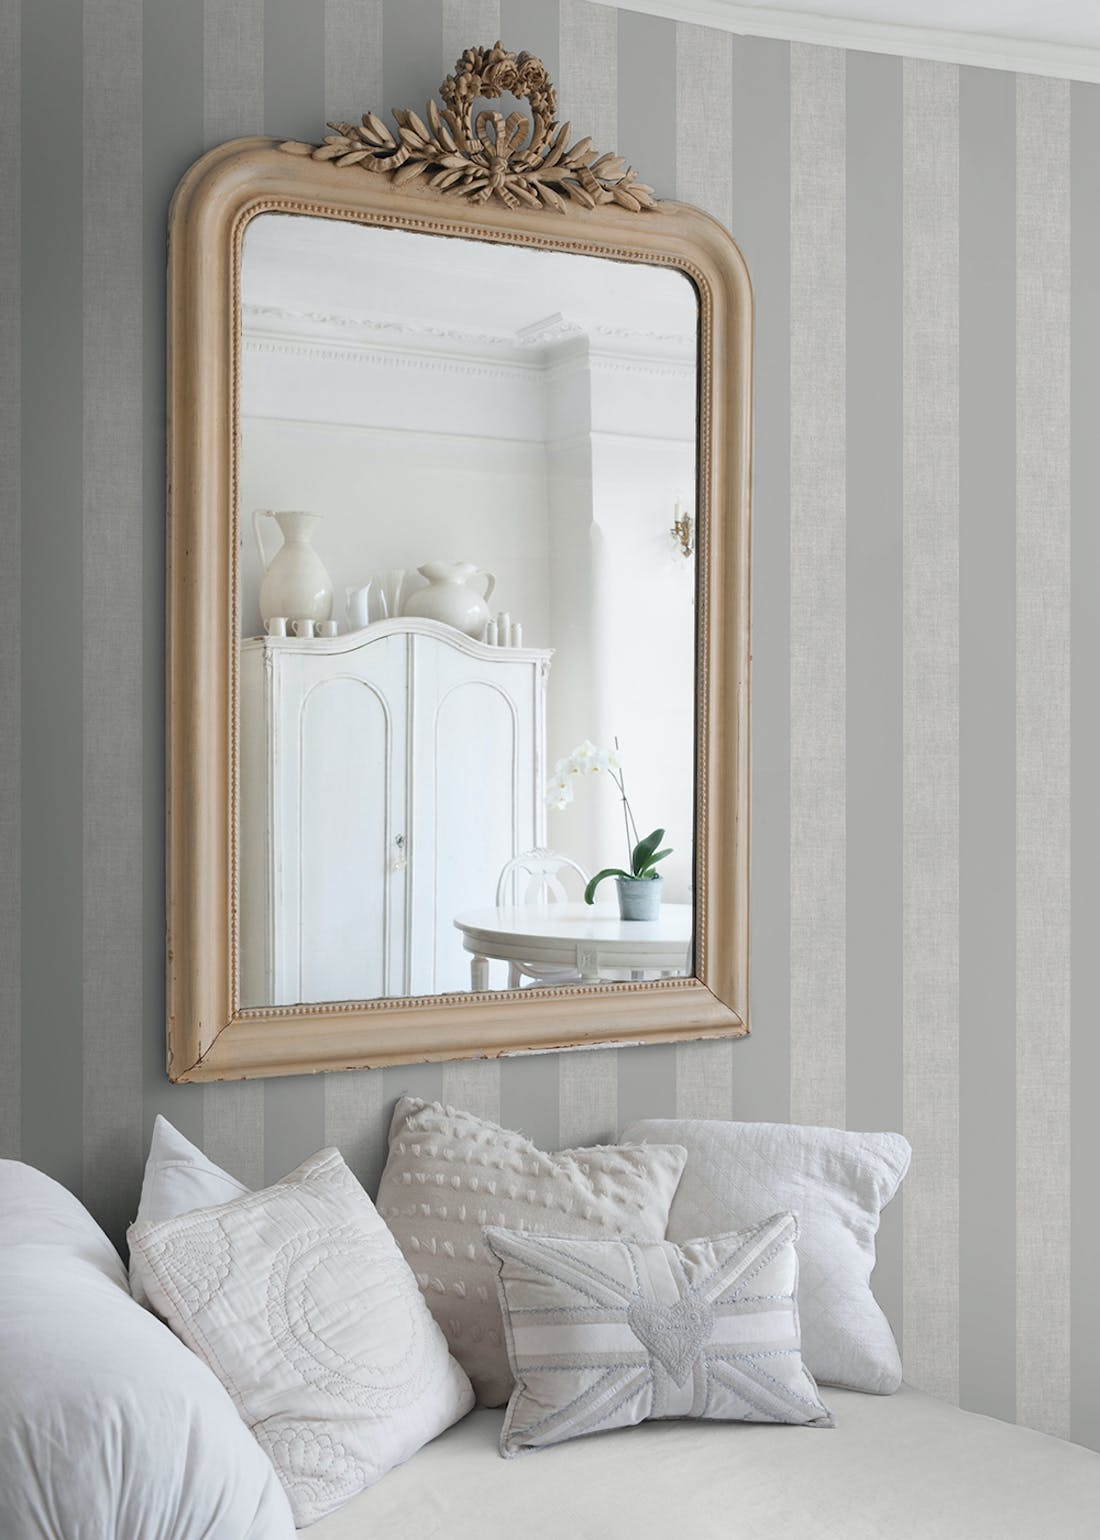 Darcy James Grey Linen Stripe Wallpaper (10.05m x 53cm)